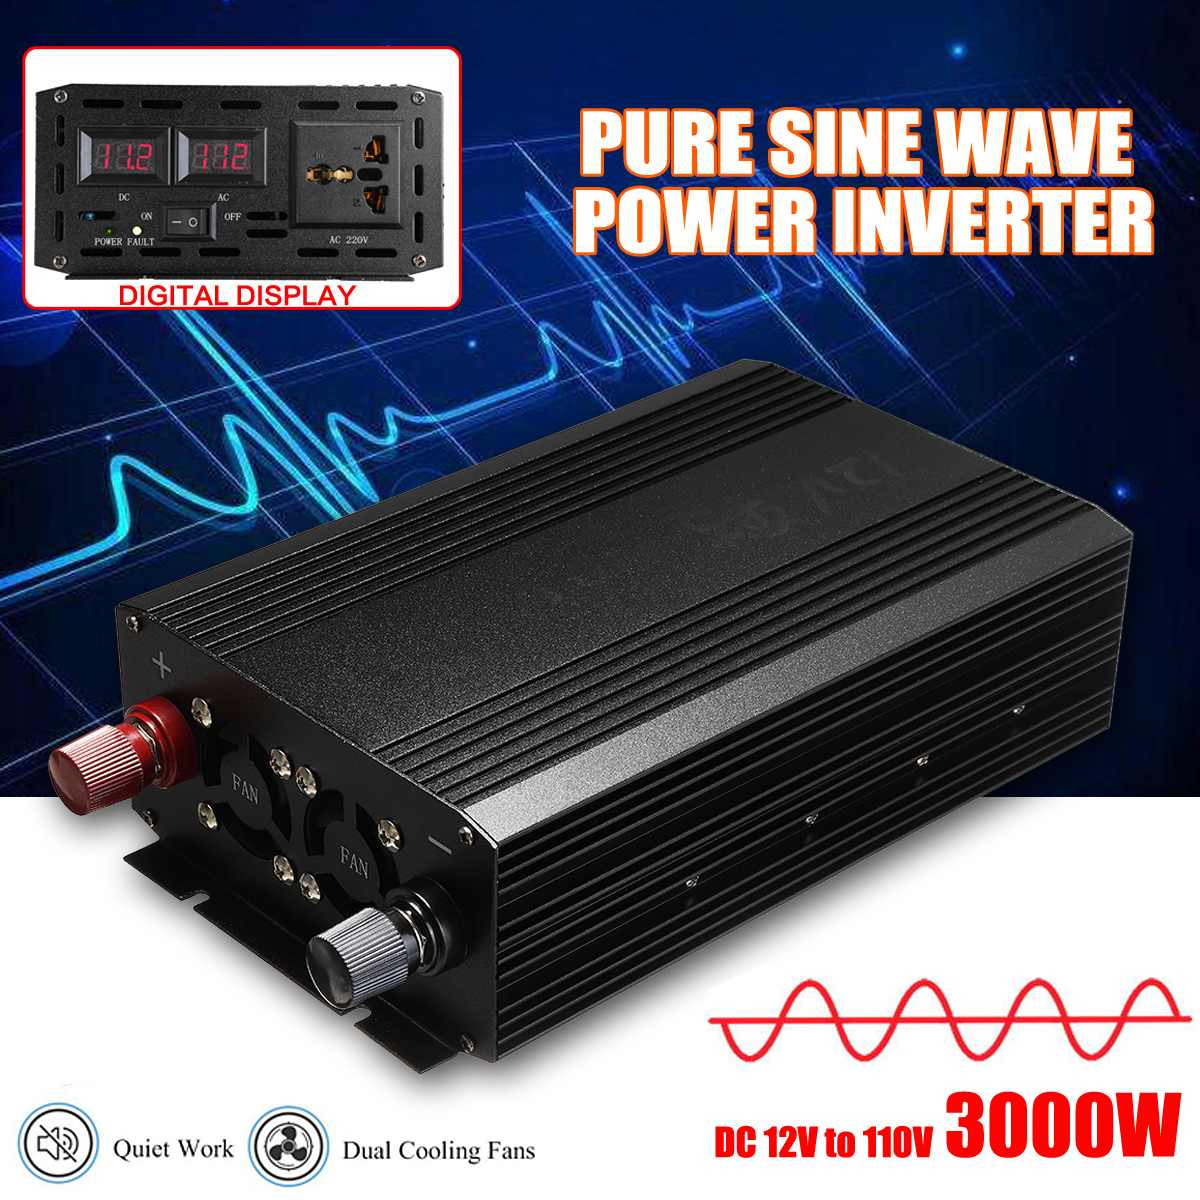 3000W Pure Sine Wave Solar Power Inverter DC 12V to AC 110V Digital Display for Home Electric Drill Power Inverter Supply3000W Pure Sine Wave Solar Power Inverter DC 12V to AC 110V Digital Display for Home Electric Drill Power Inverter Supply